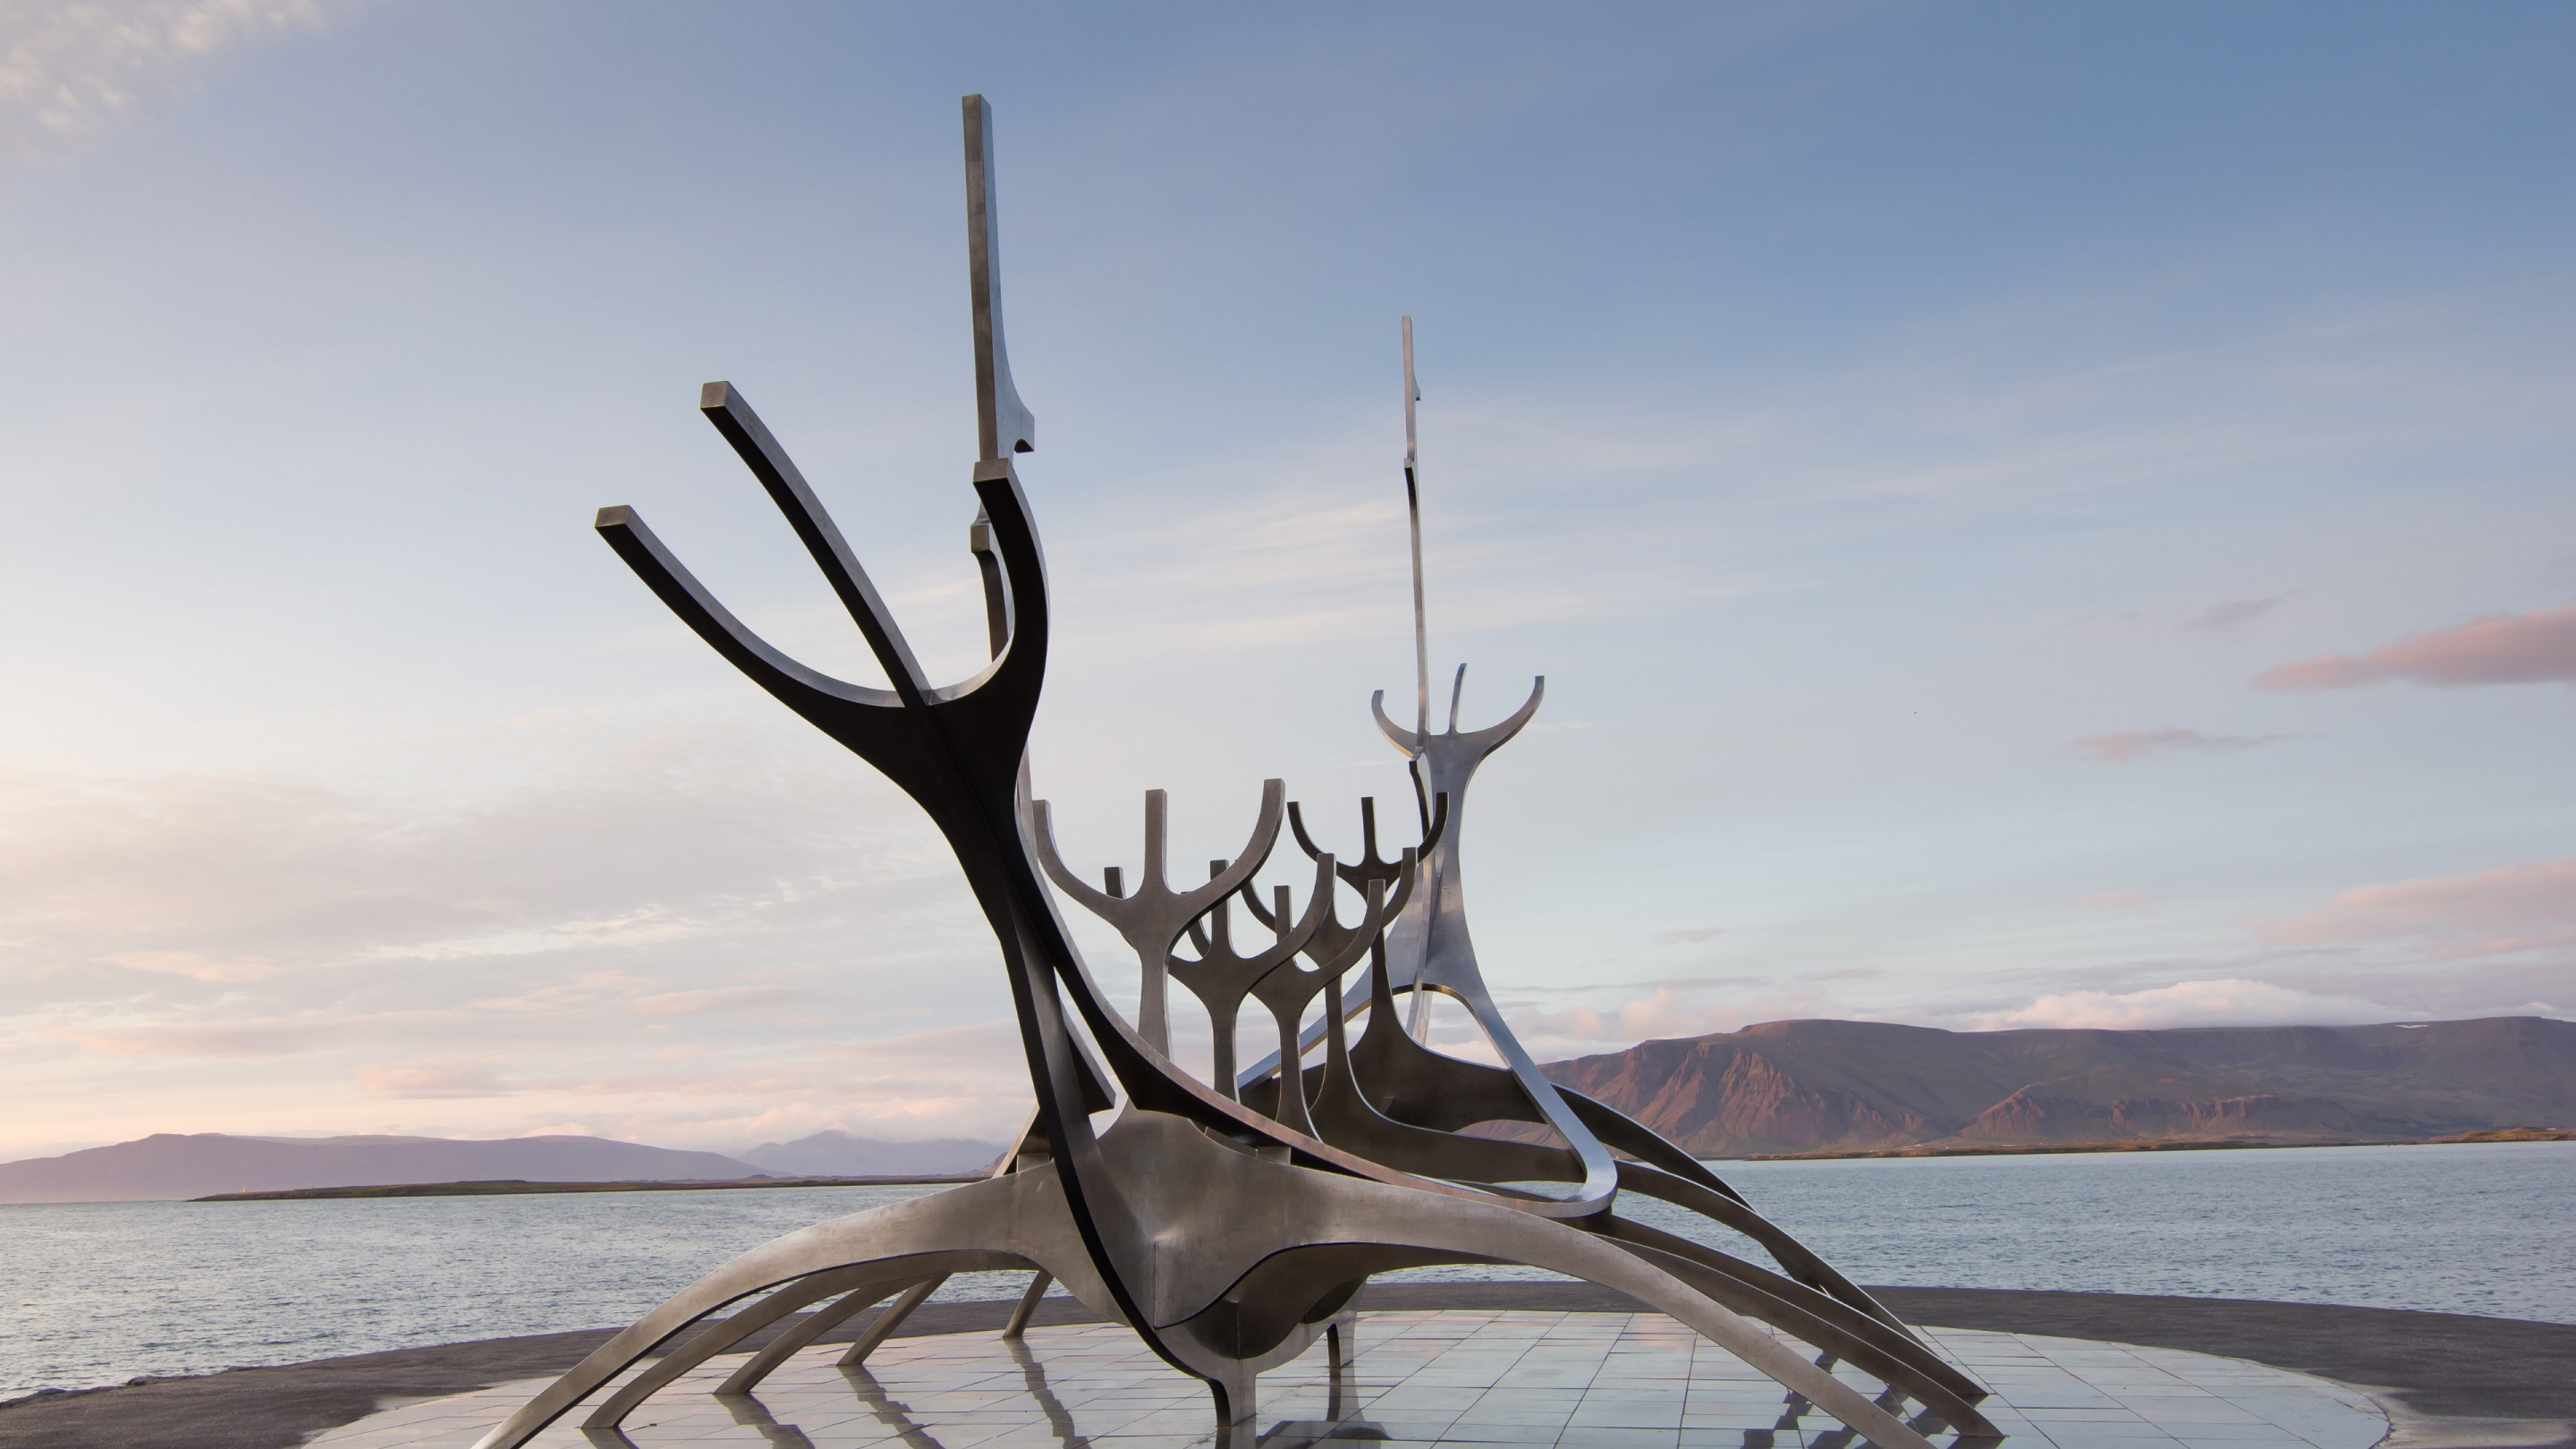 The Sun Voyager from Reykjavik, Iceland | 2880x1620 wallpaper